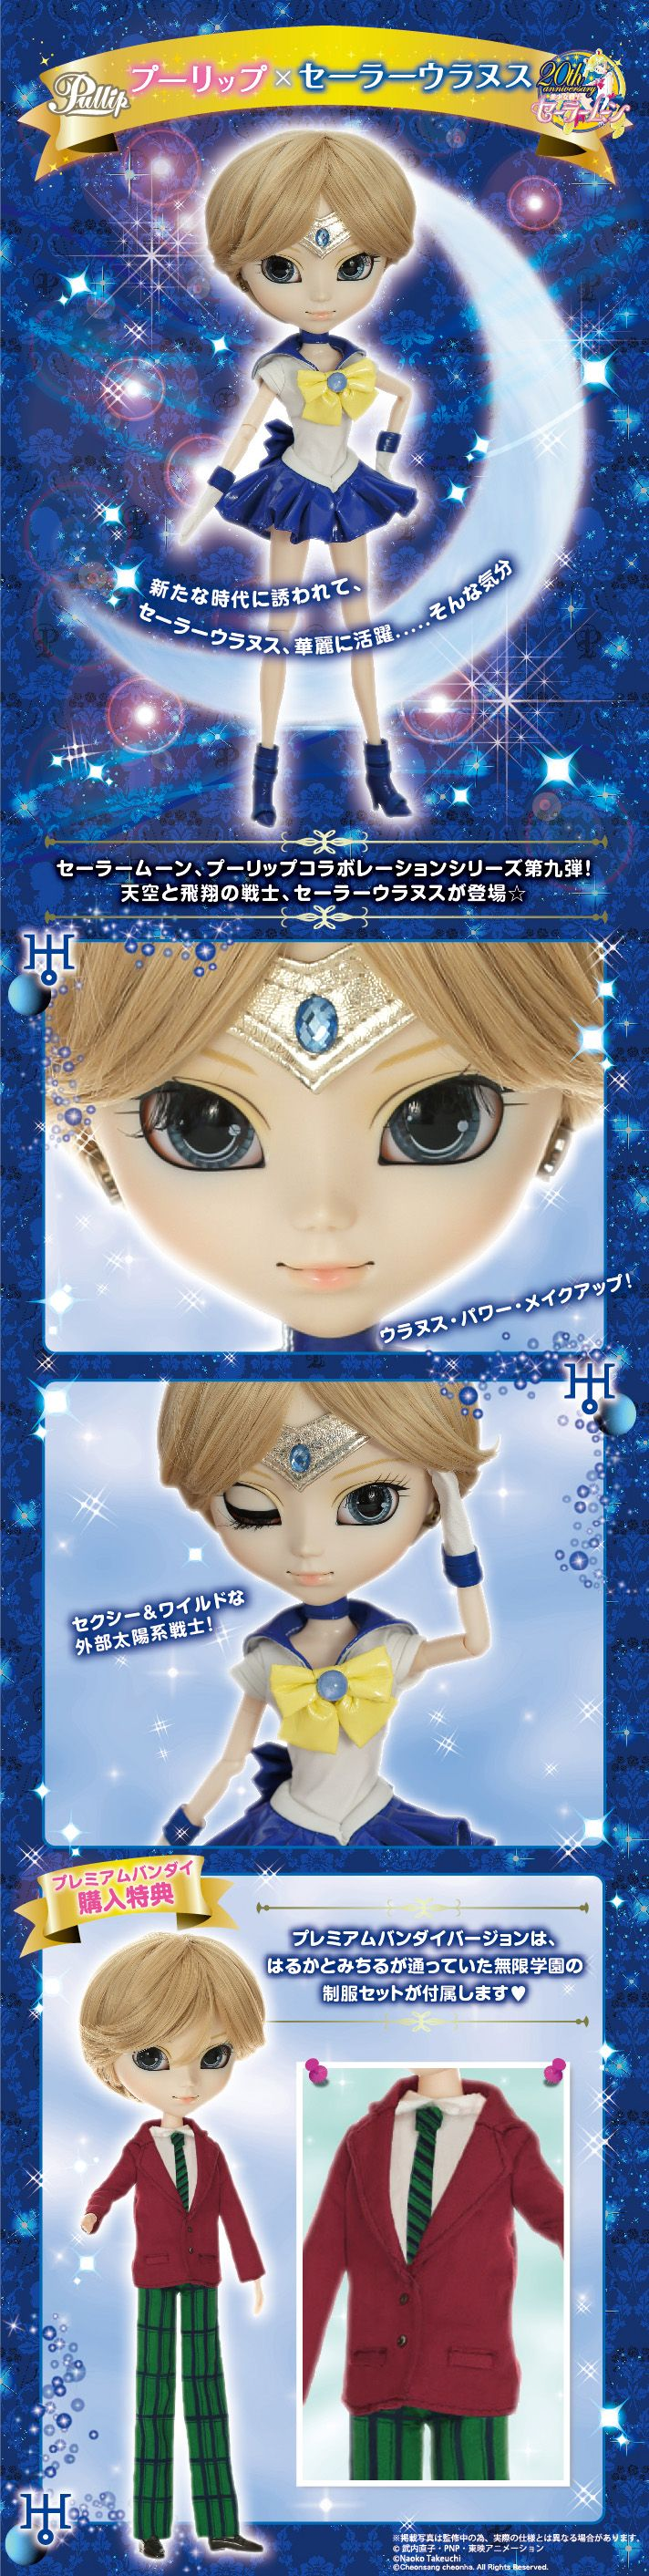 Pullip Sailor Uranus Premium Bandai Limited Edition. Sailor Moon rocks! - A Rinkya Blog